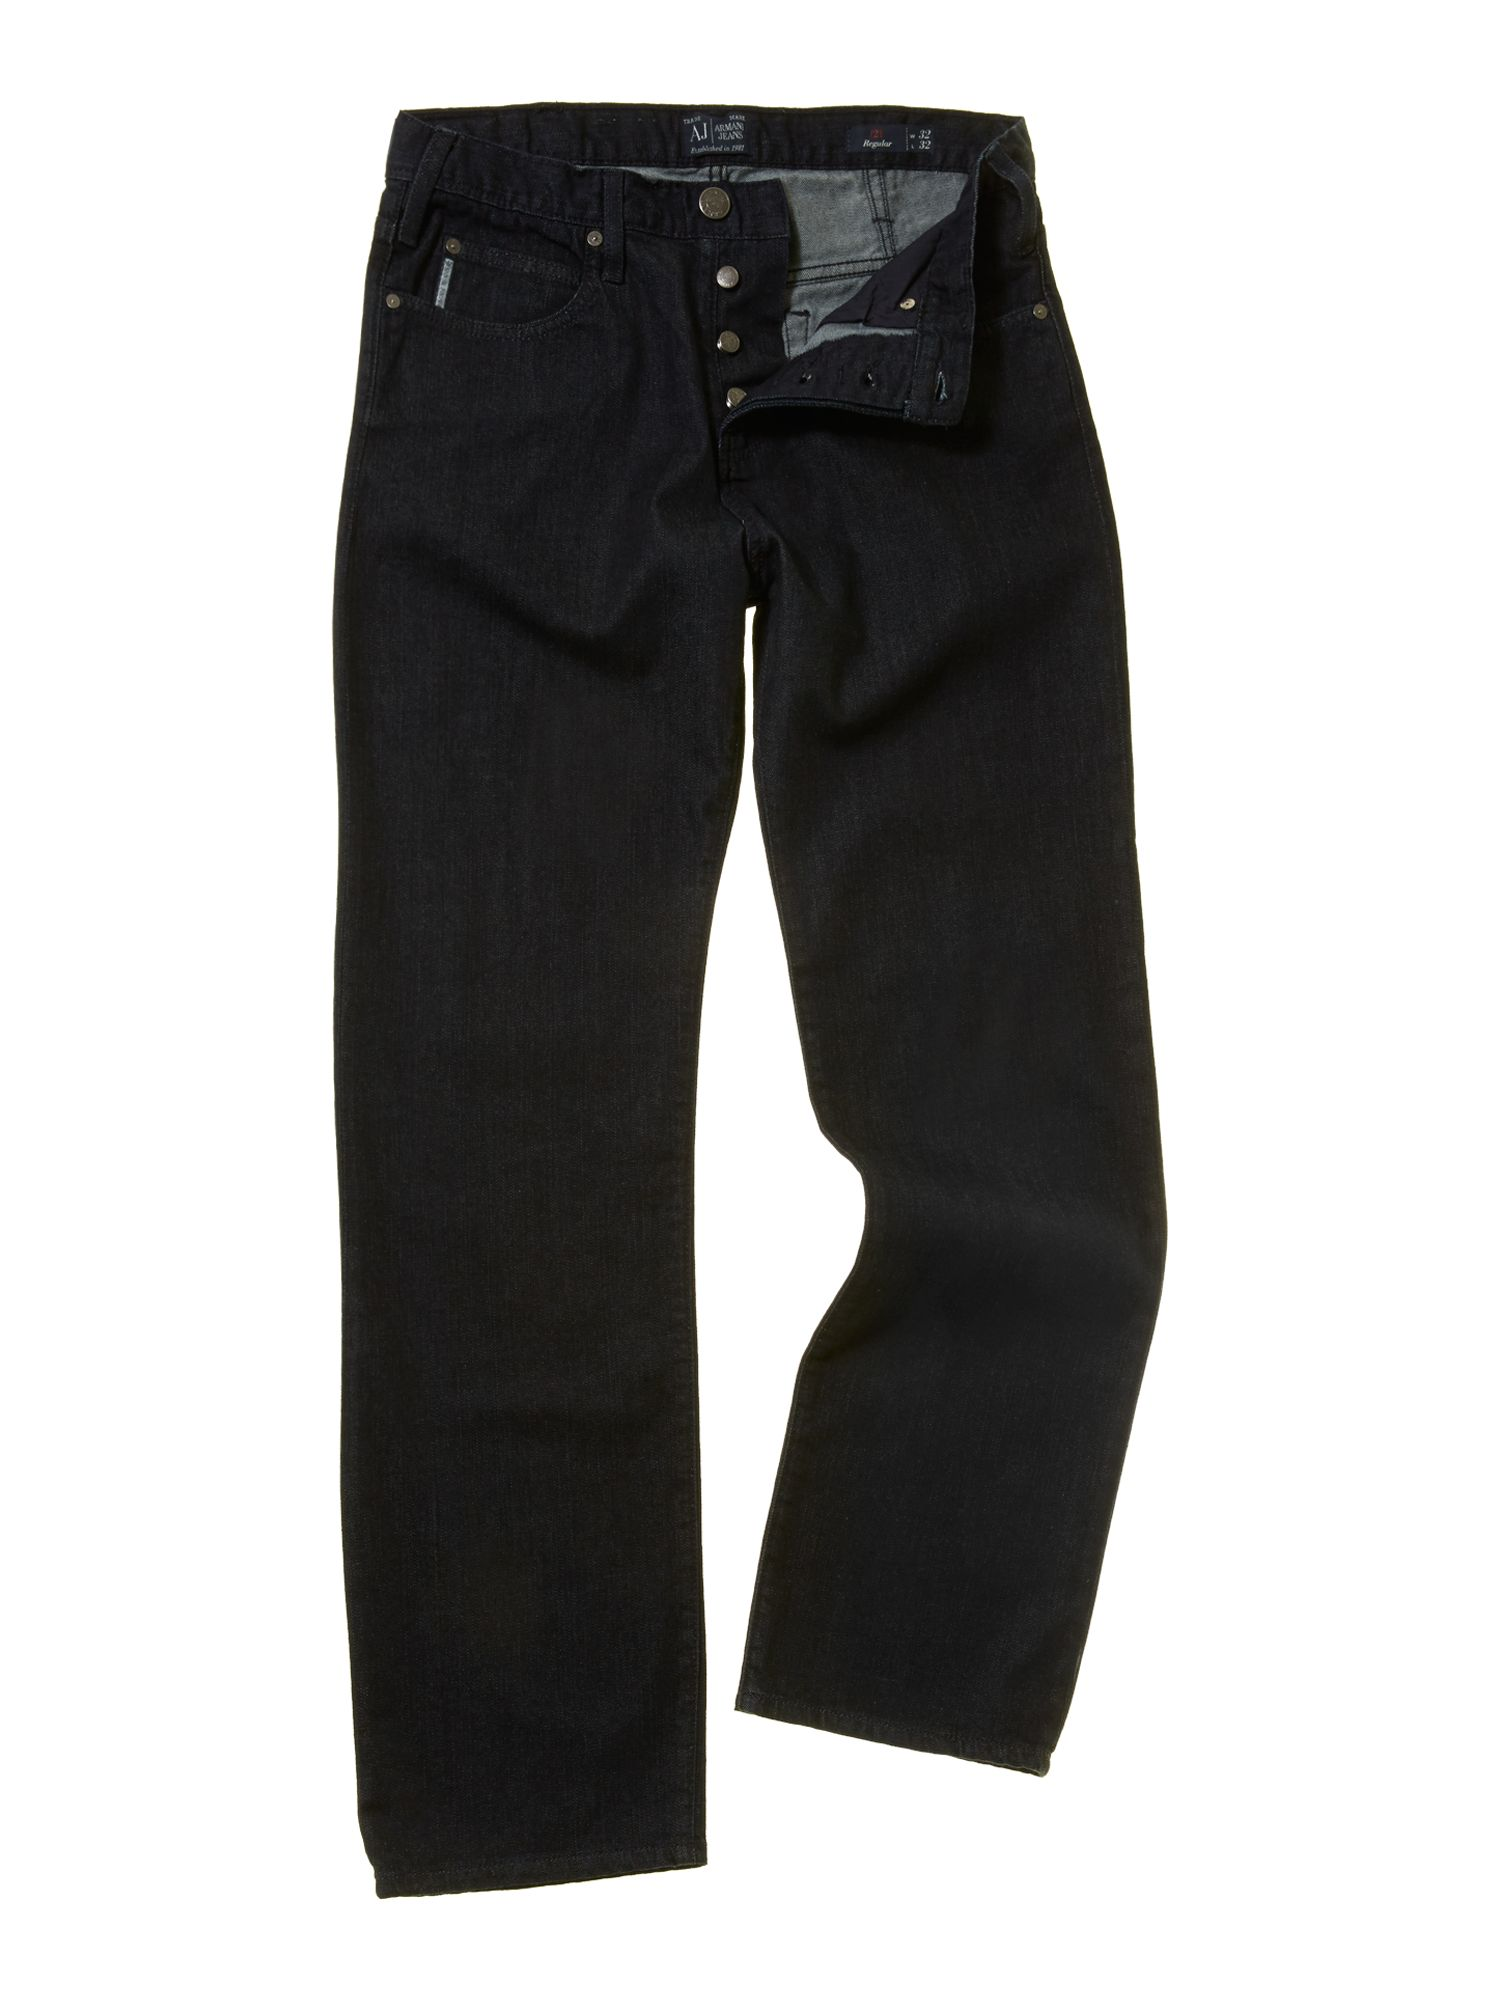 J21 regular fit jeans